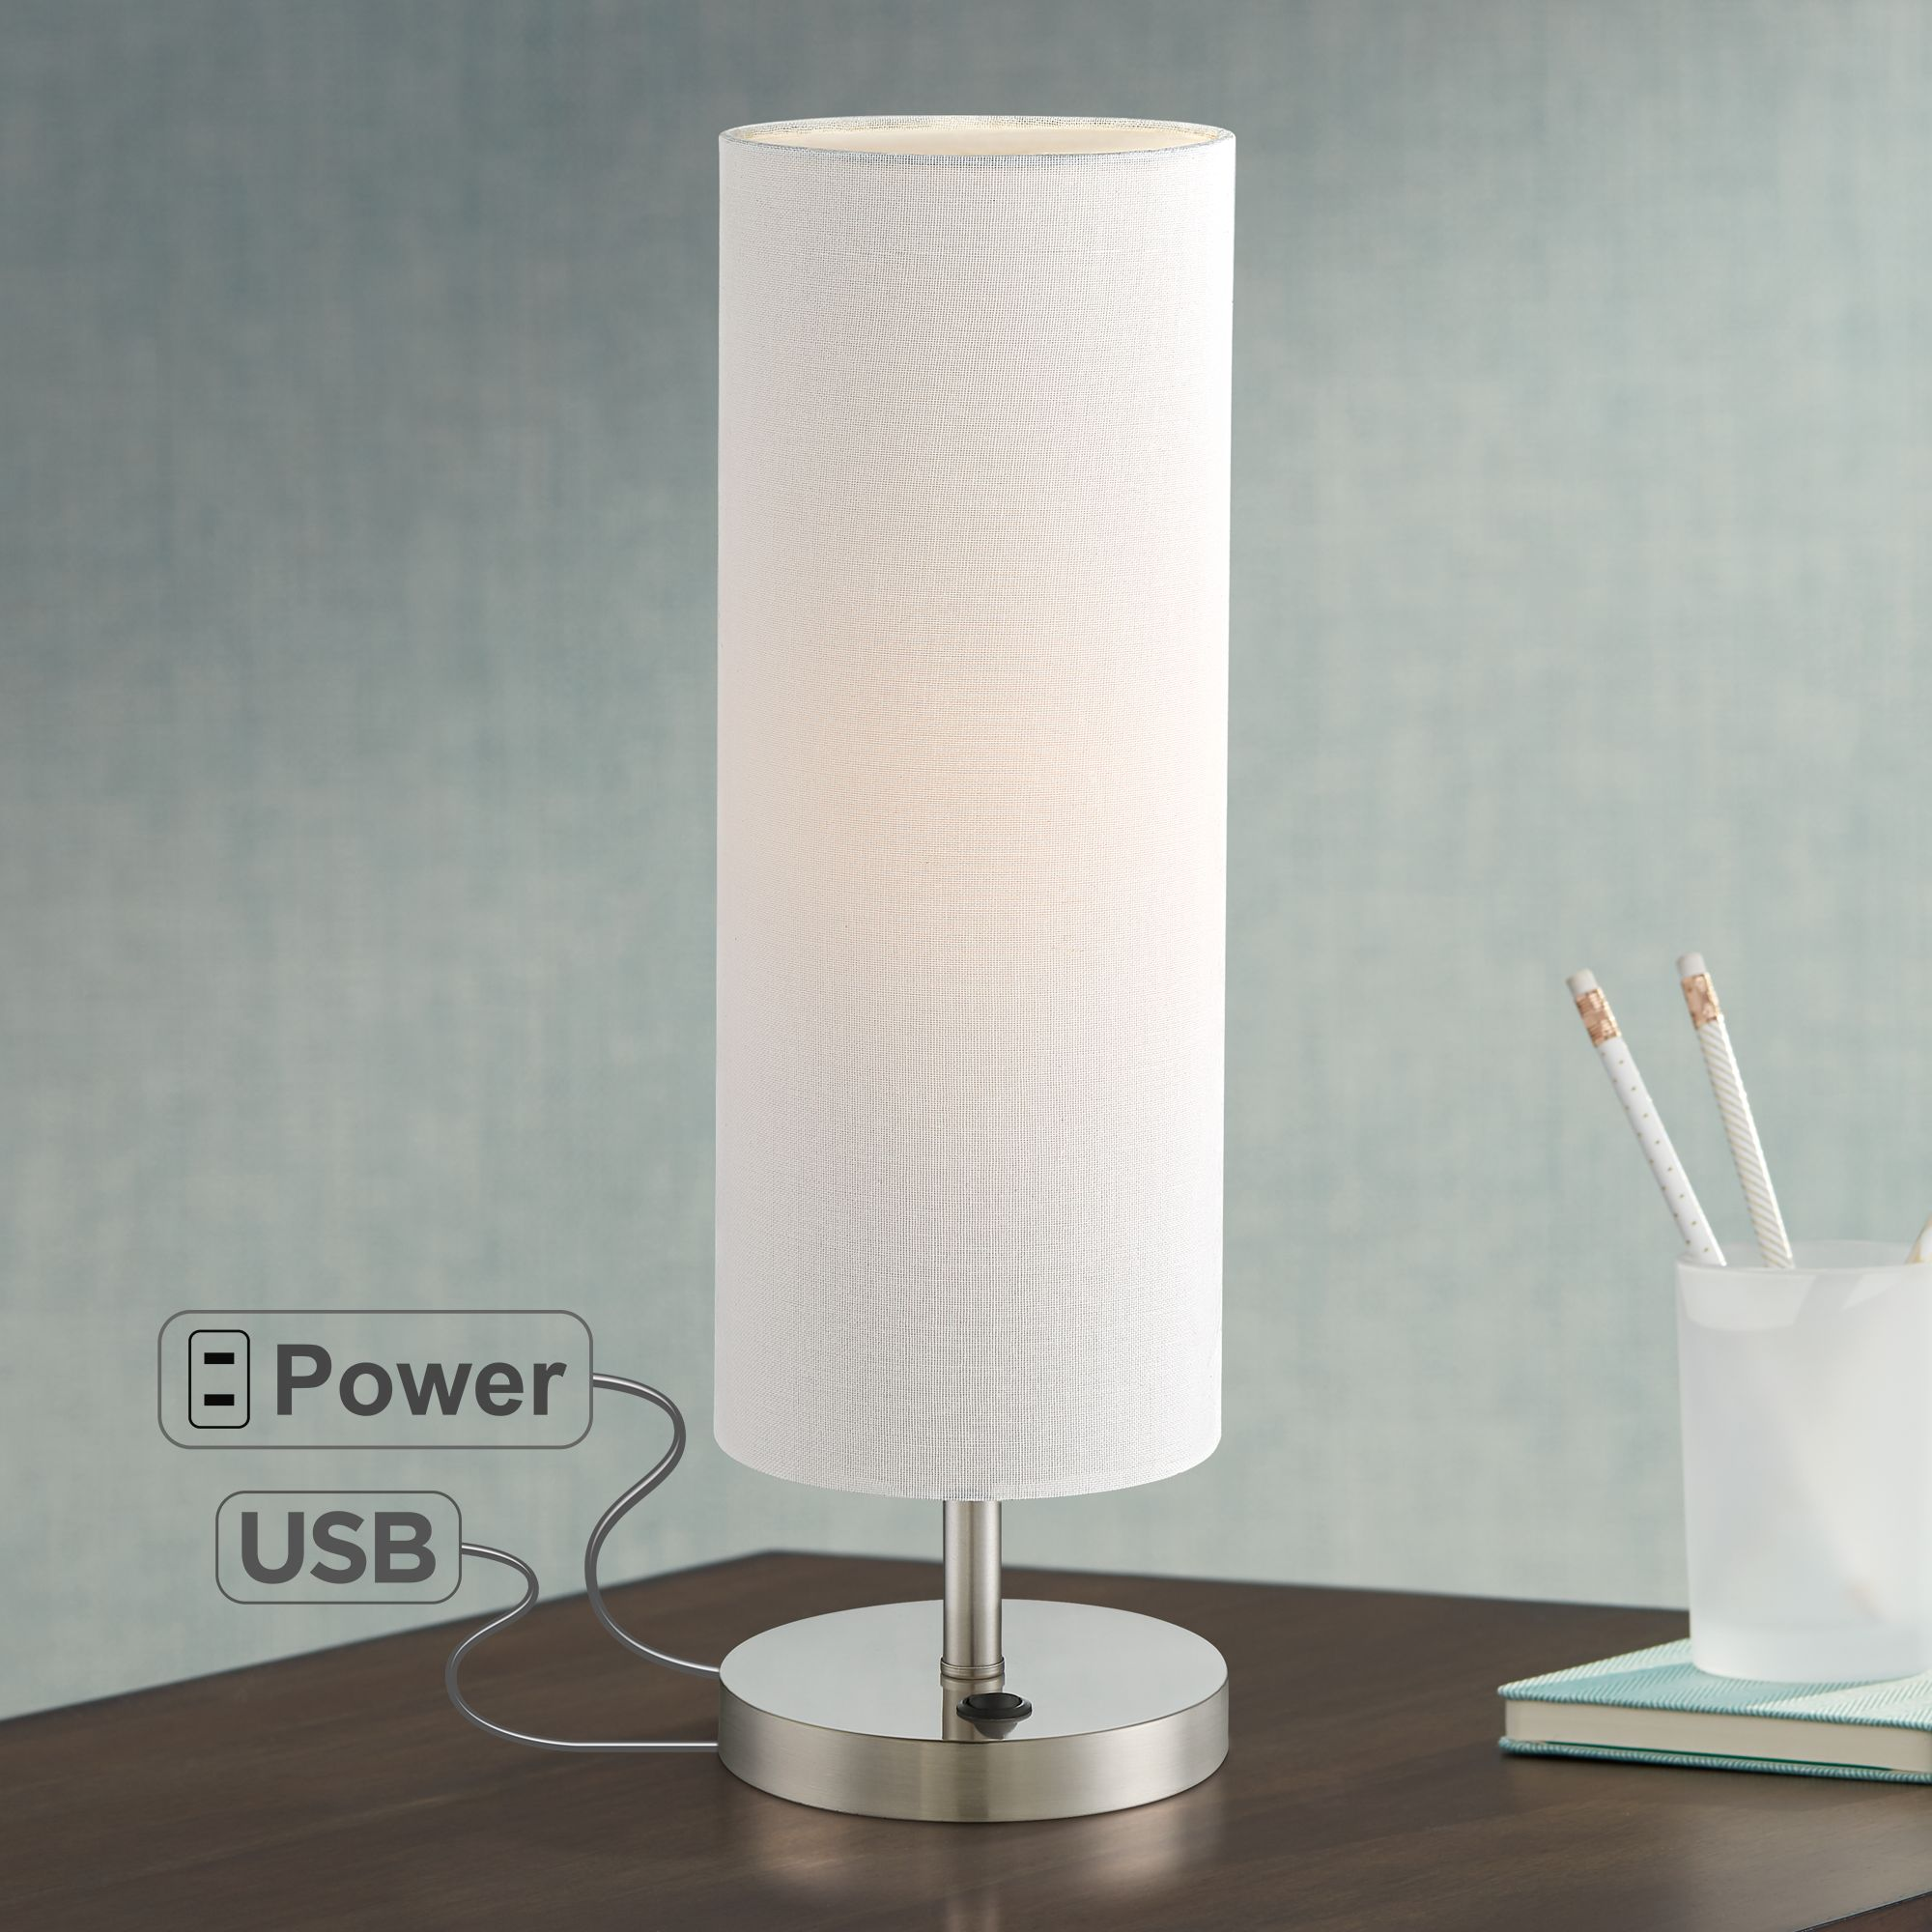 lighting modern accent table lamp with usb and power heyburn brushed steel port base off white cylinder shade for living room west elm square dining formal sets pier one imports